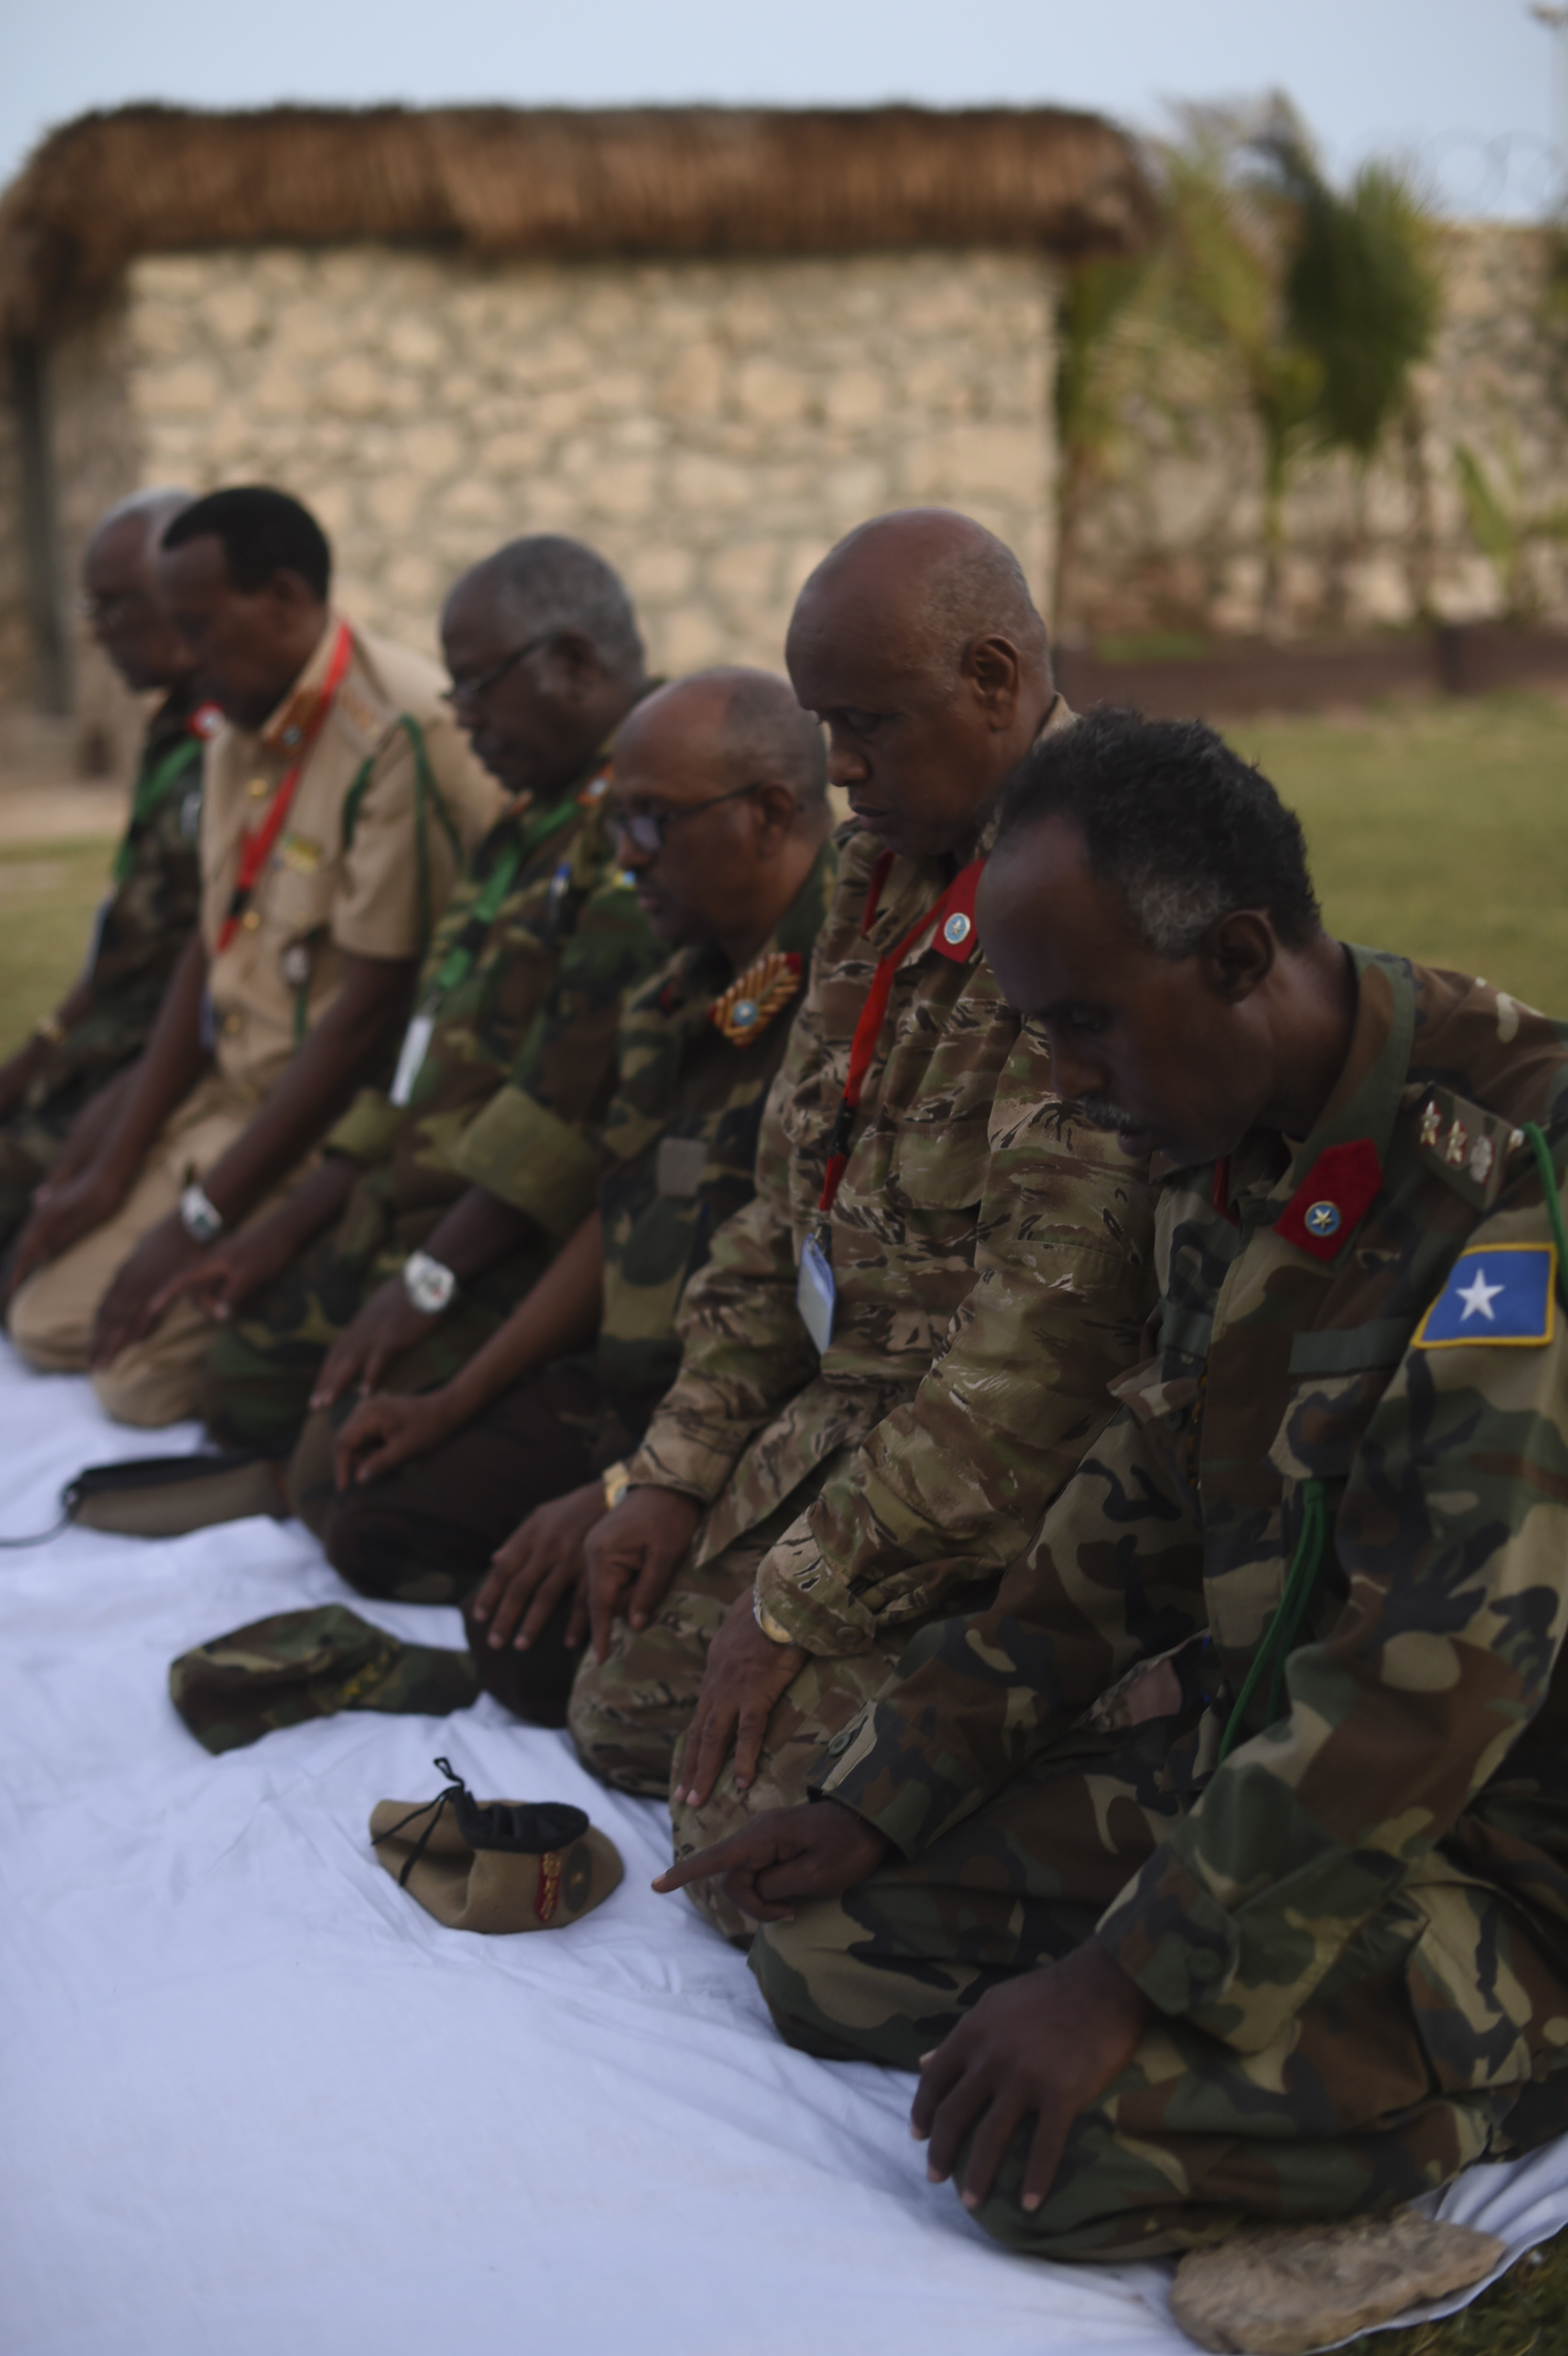 Members of the Somali National Army kneel to pray before an Iftar at the Mogadishu International Airport, Mogadishu, Somalia, June 5, 2017. Iftar is the evening meal when Muslims end their daily Ramadan fast at sunset. (U.S. Air Force Photo by Staff Sgt. Eboni Prince/Released)